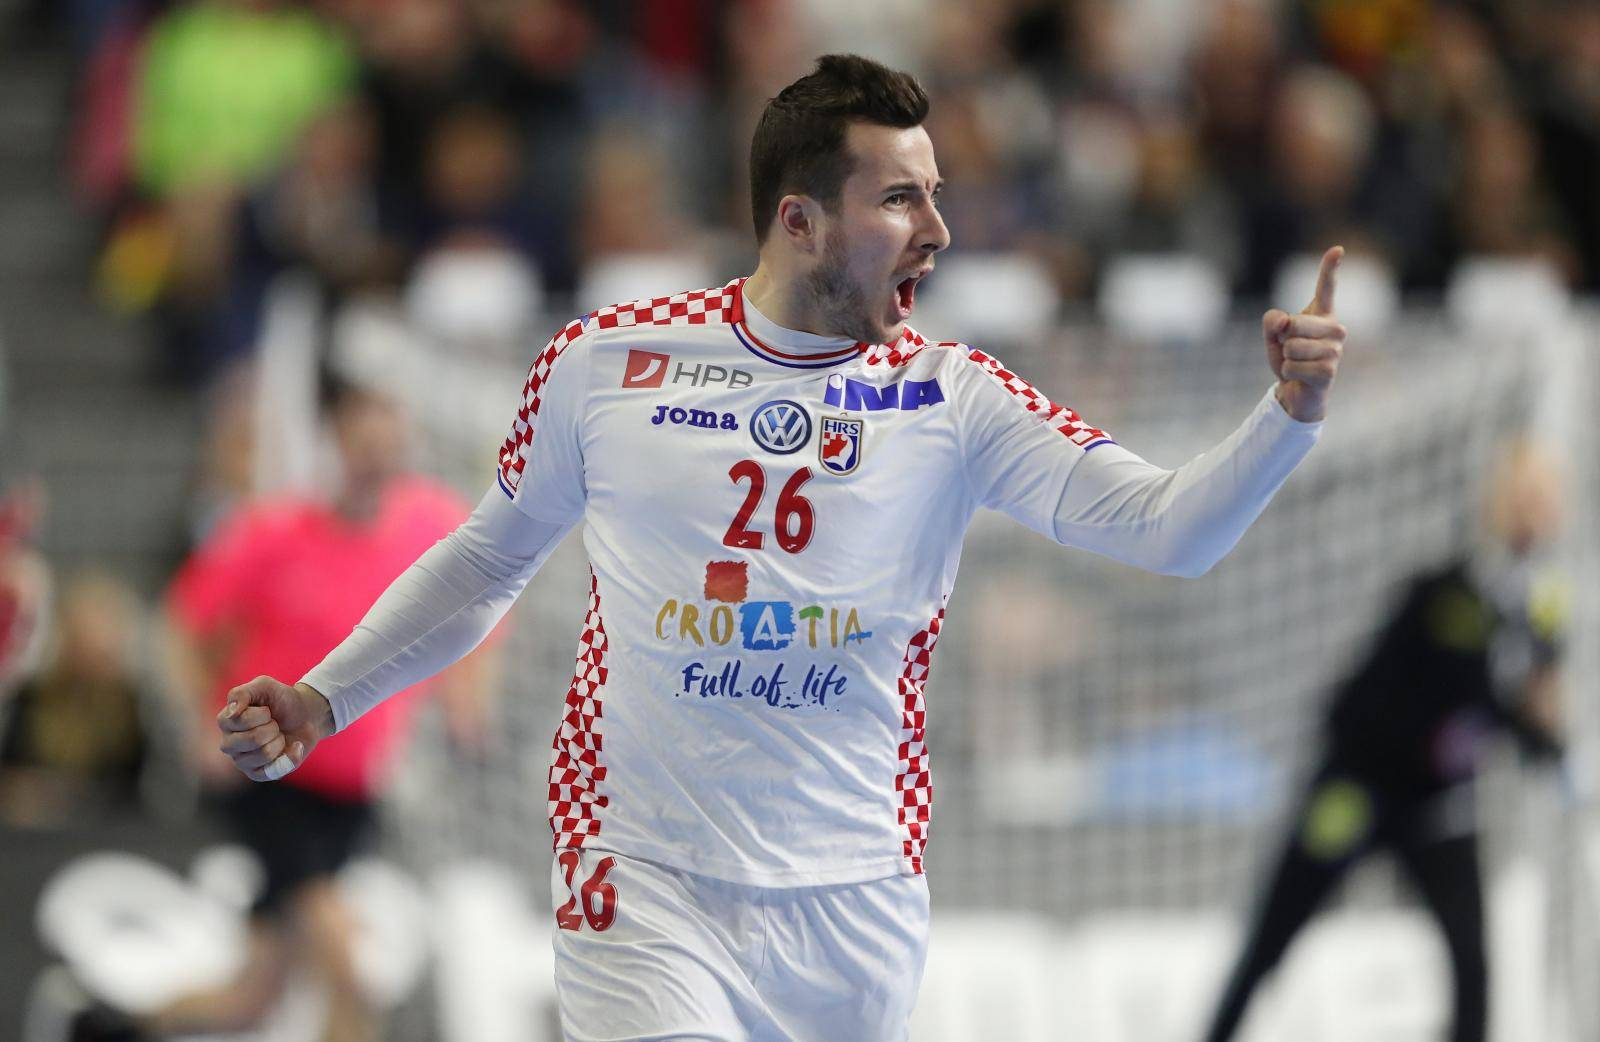 firo: 23.01.2019, Handball: World Cup World Cup Main Round France - Croatia, Croatia